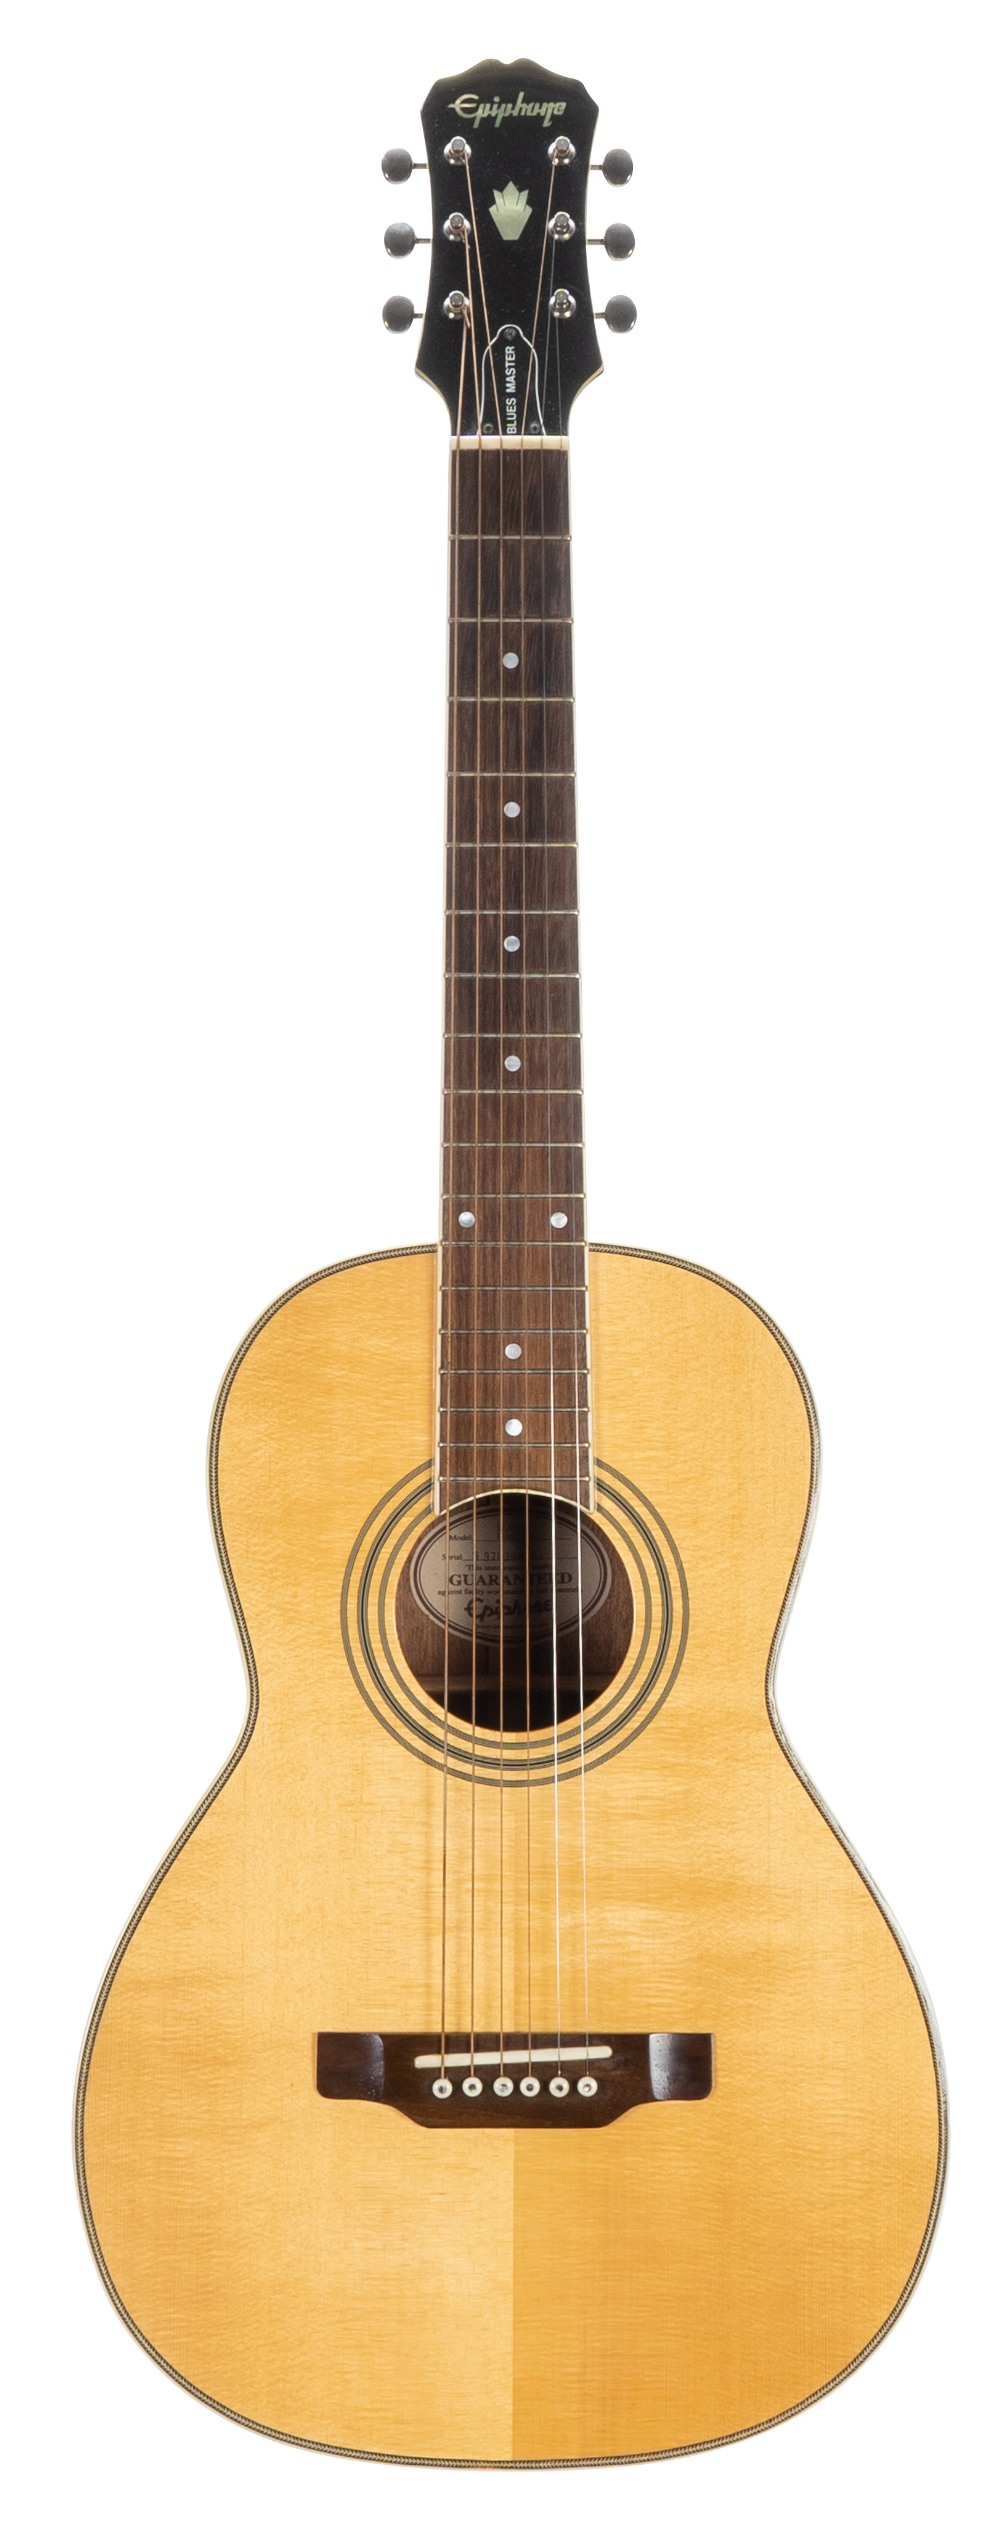 1997 Epiphone Blues Master acoustic guitar, made in Korea, ser. no. S97xxxx10; Back and sides: